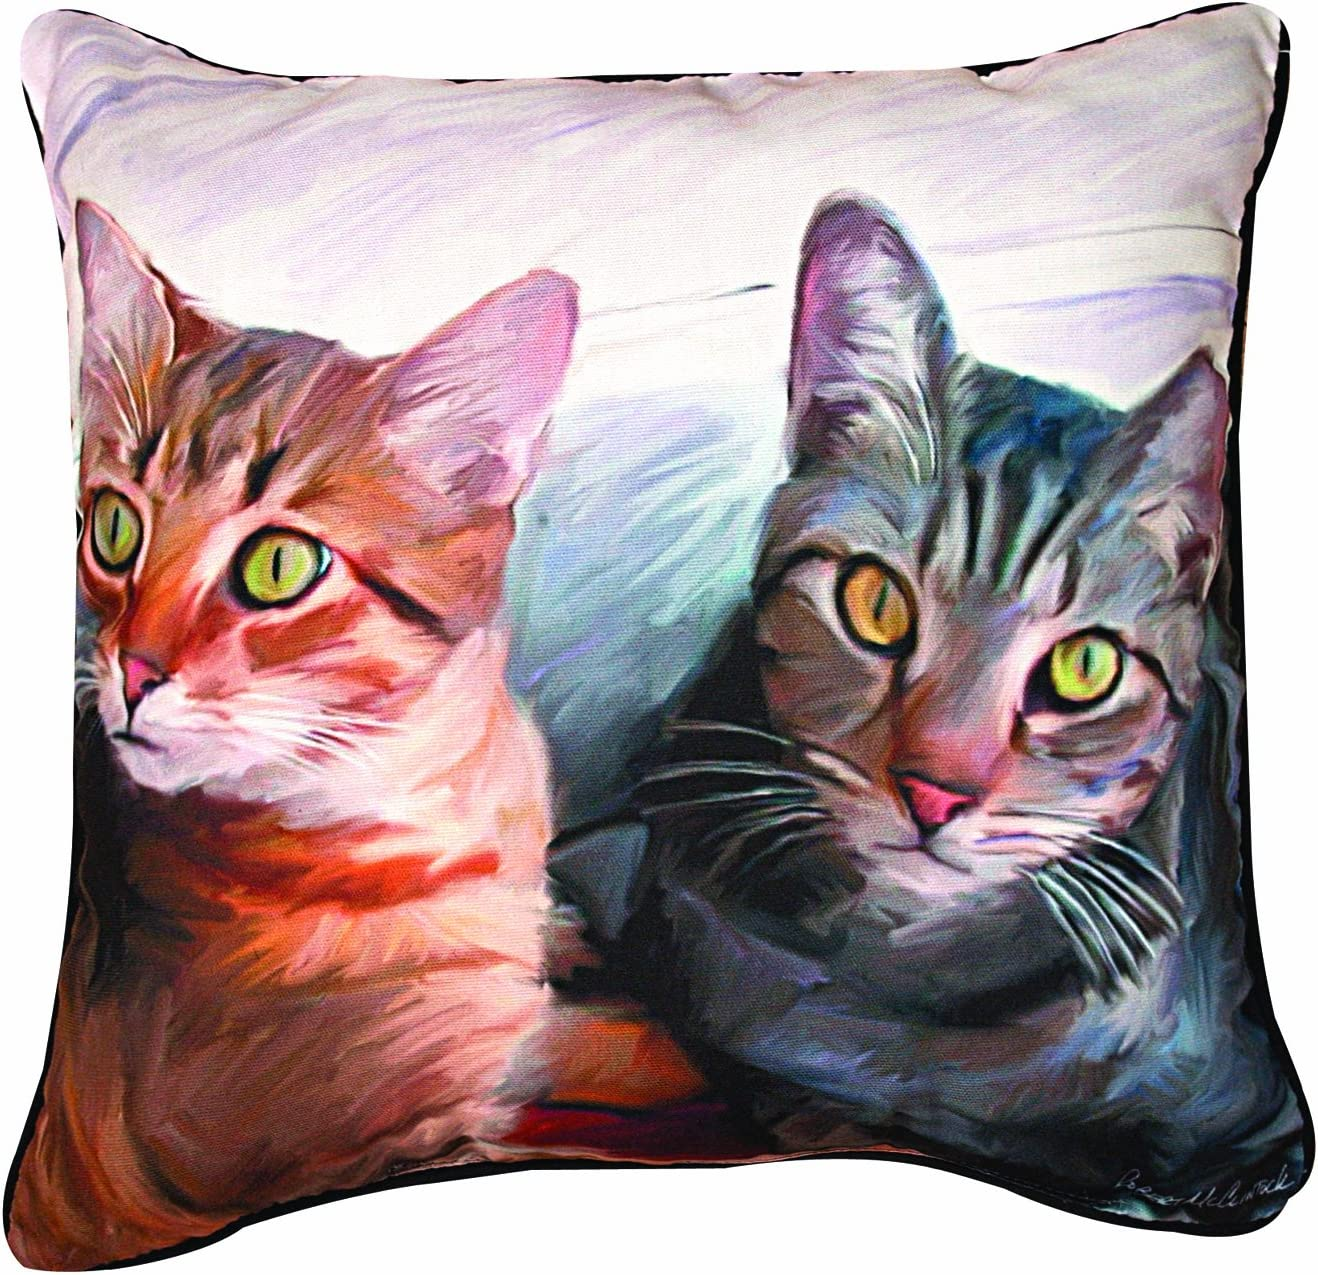 Manual 2 Cats Paws and Whiskers Decorative Square Pillow, 18-Inch